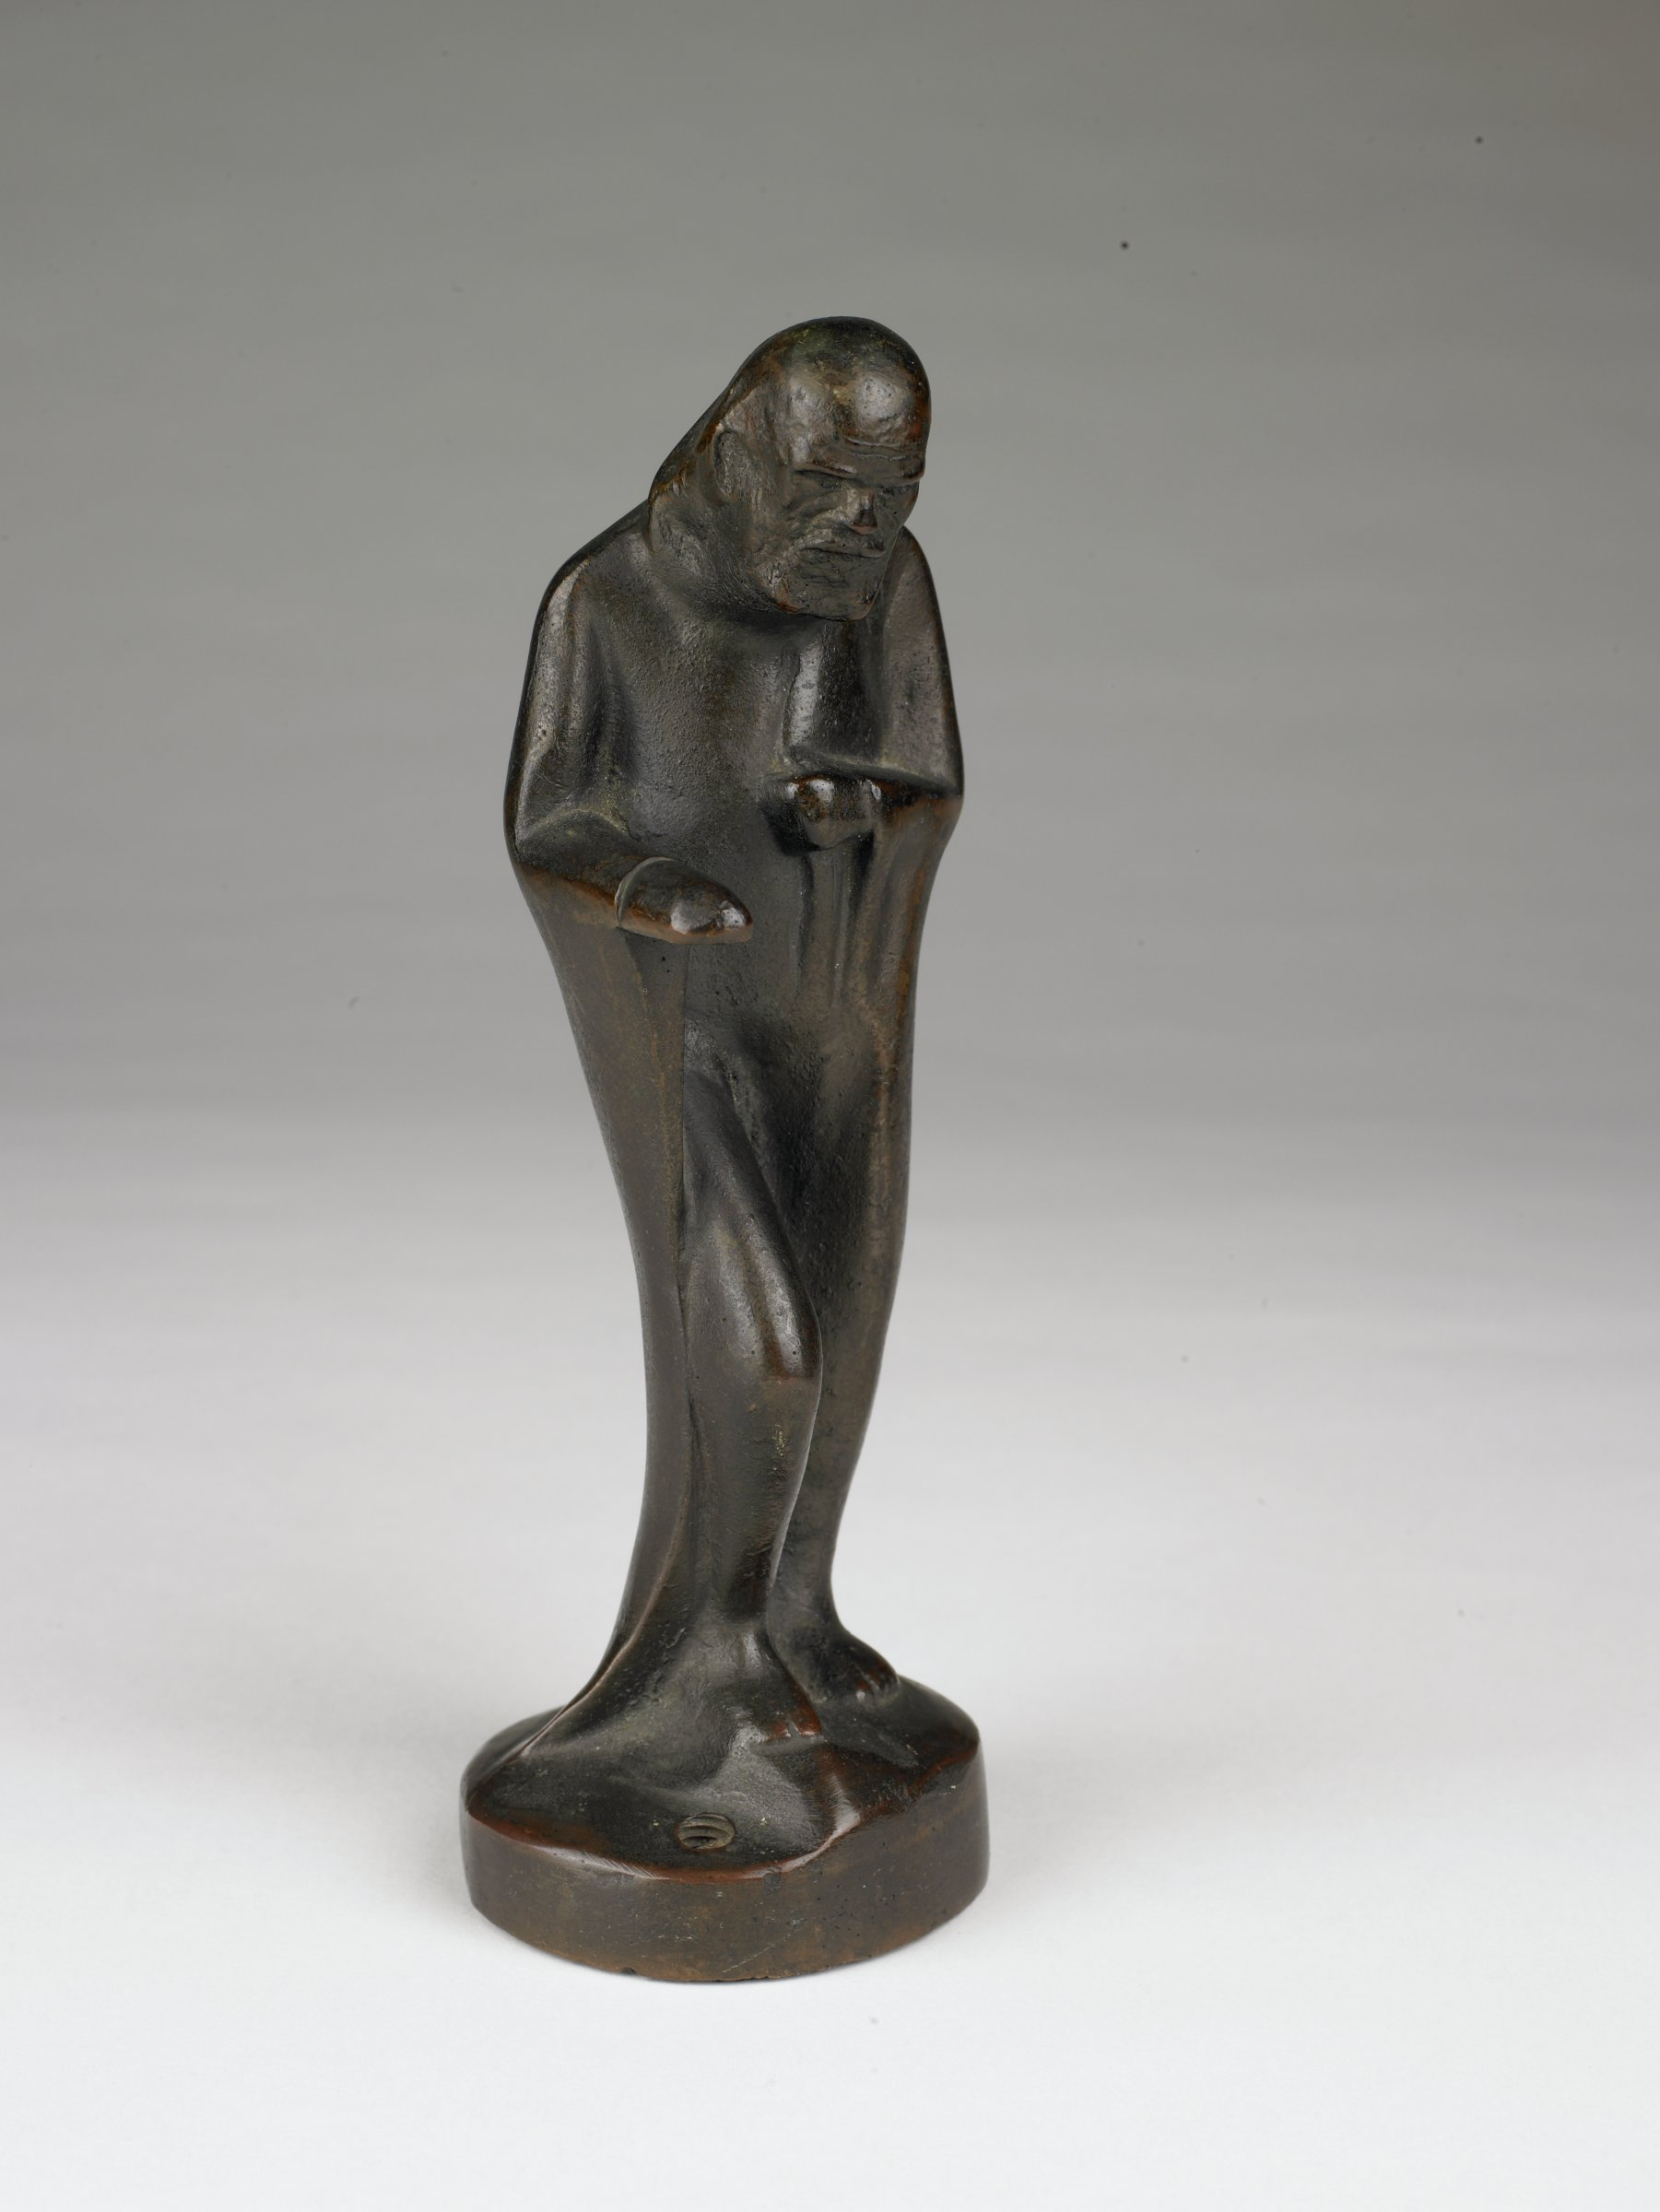 Statuette of a robed, bearded man, monkish in appearance, holding a glass mercury thermometer [missing] as walking stick in right hand.